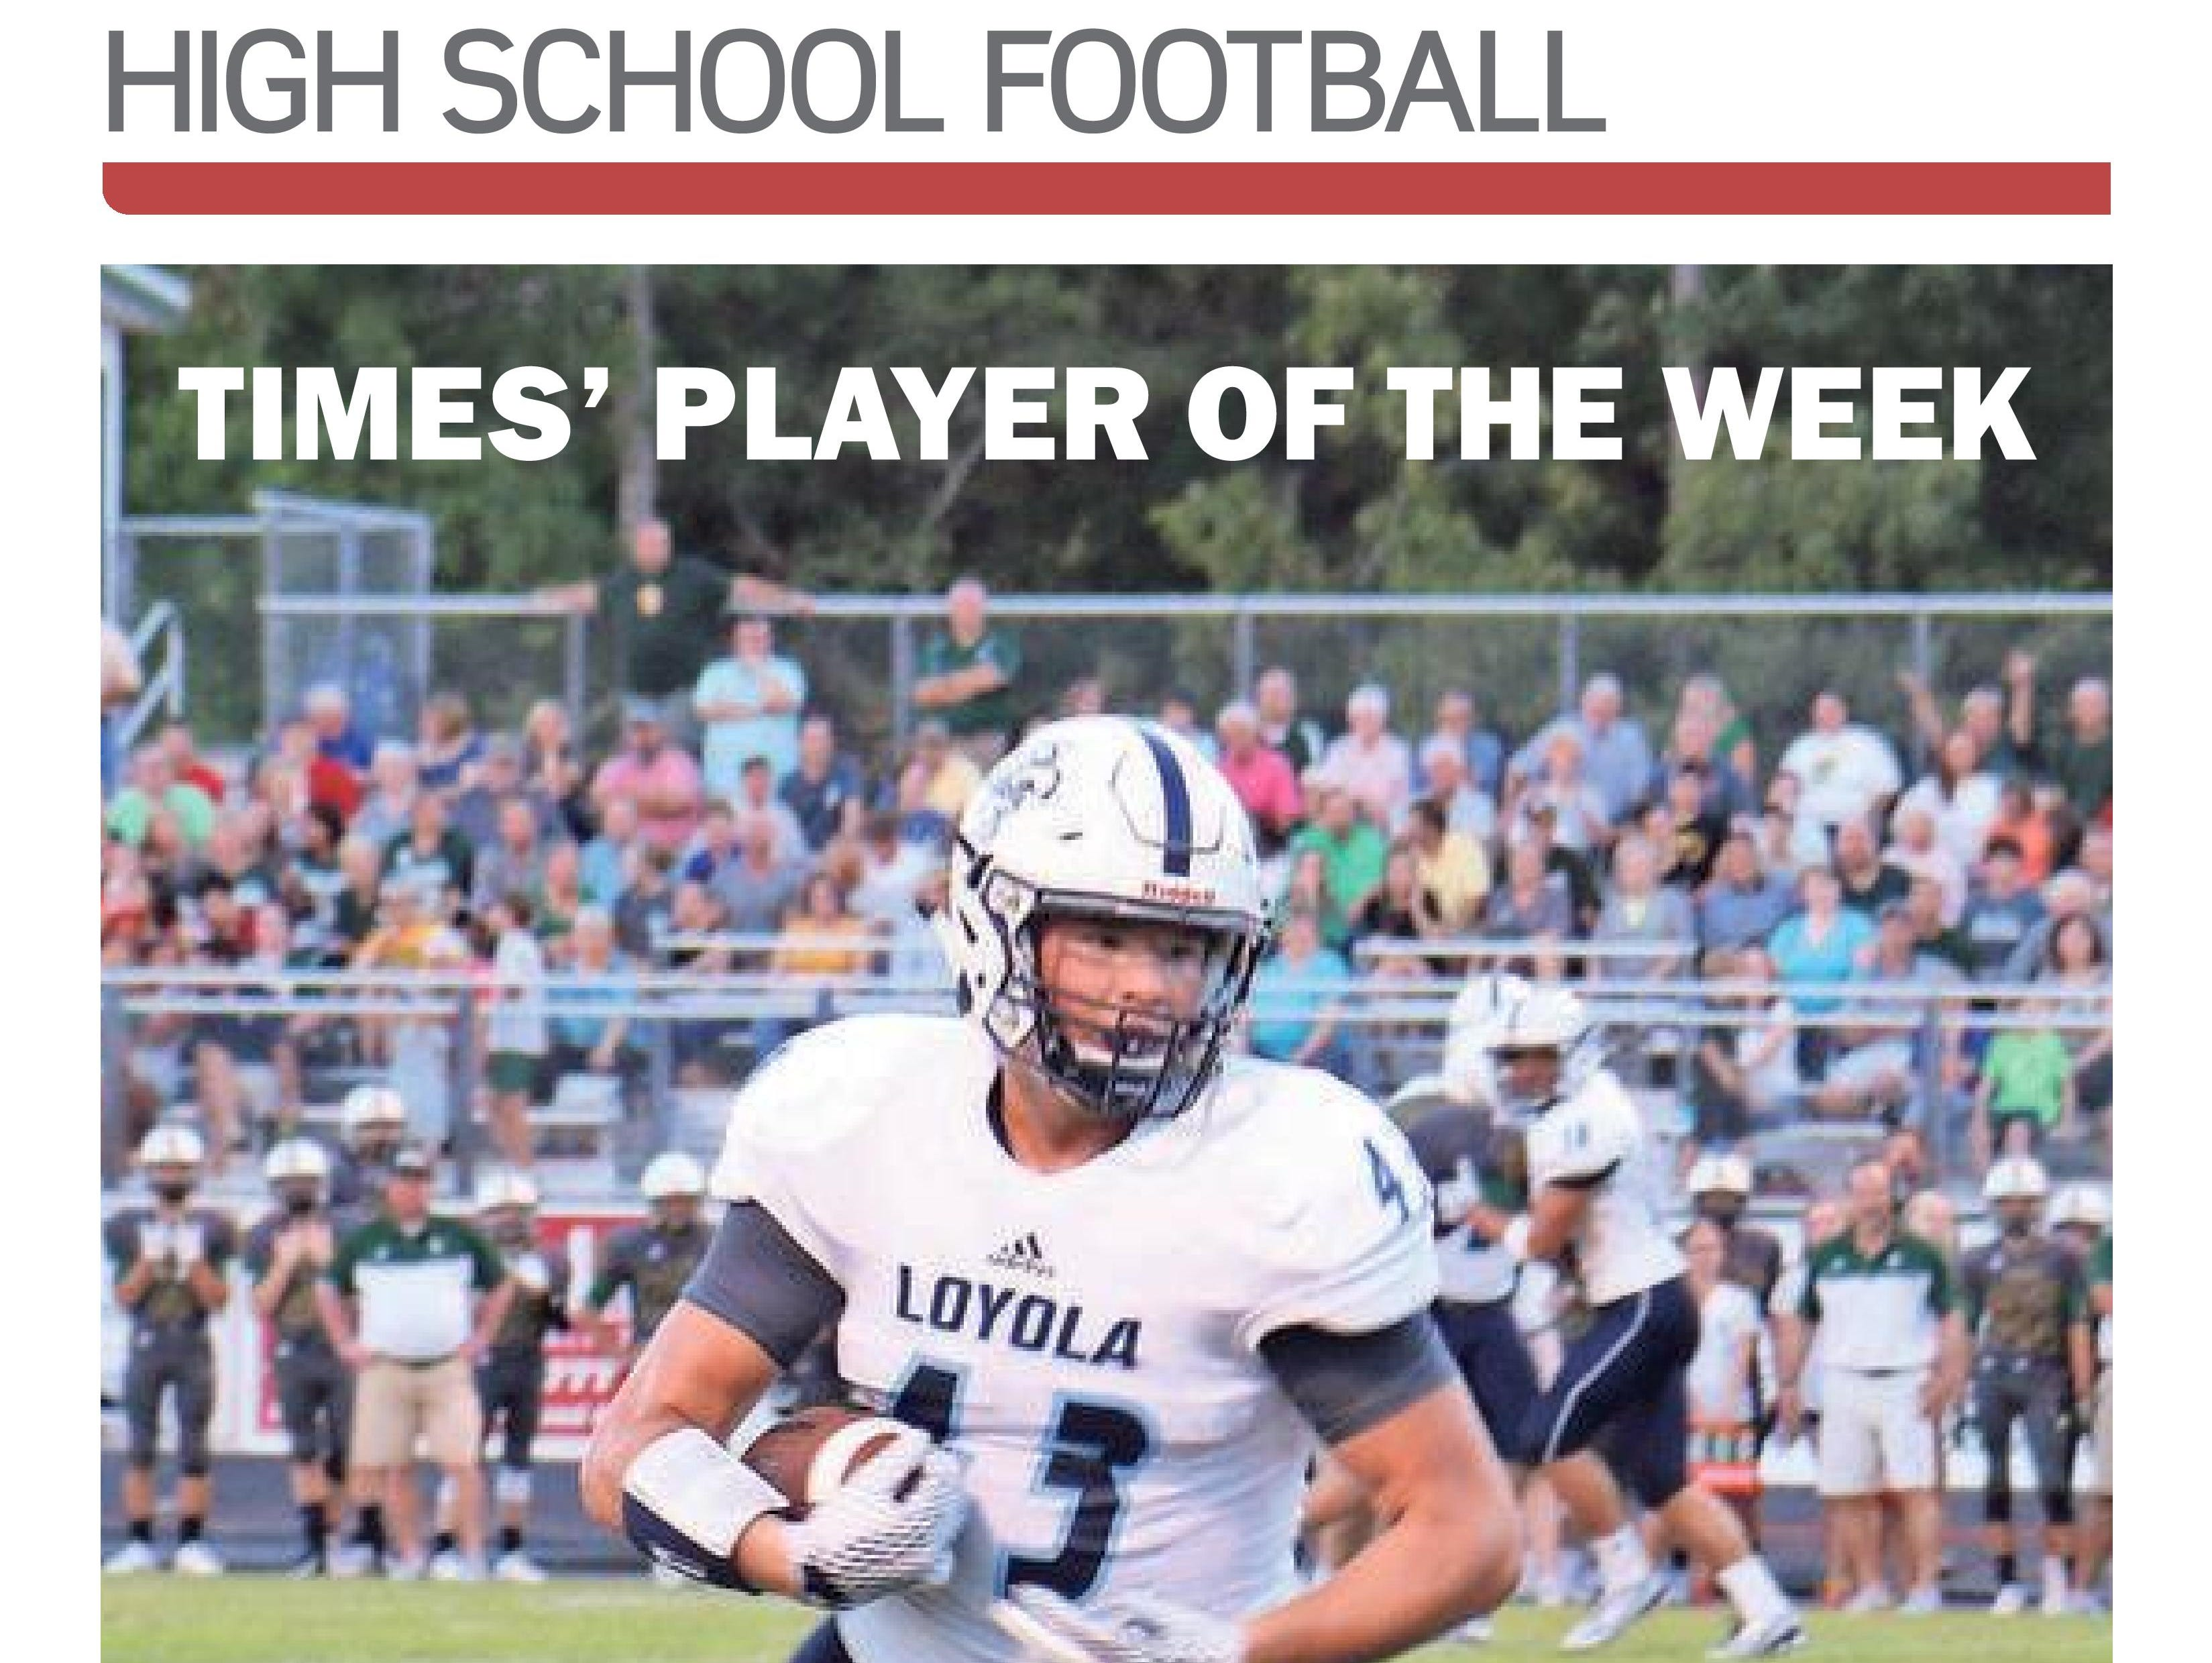 Loyola running back Ethan Stansell was voted the Player of the Week for Week 1.